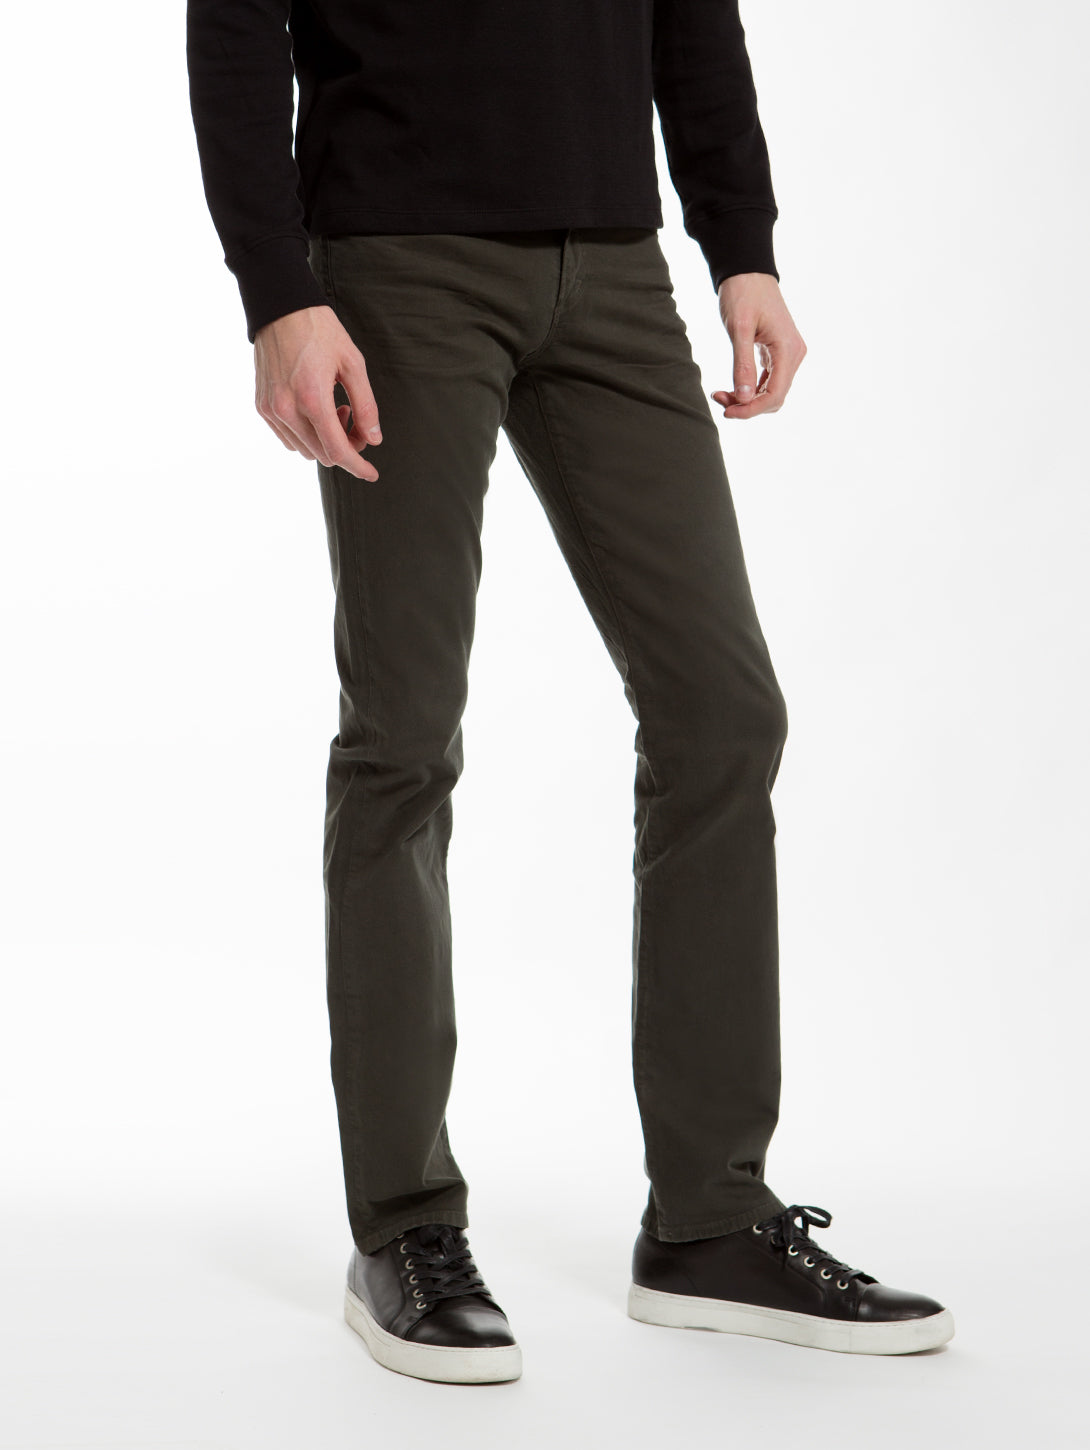 Gage Classic Straight Pant-Citizens of Humanity-Over the Rainbow